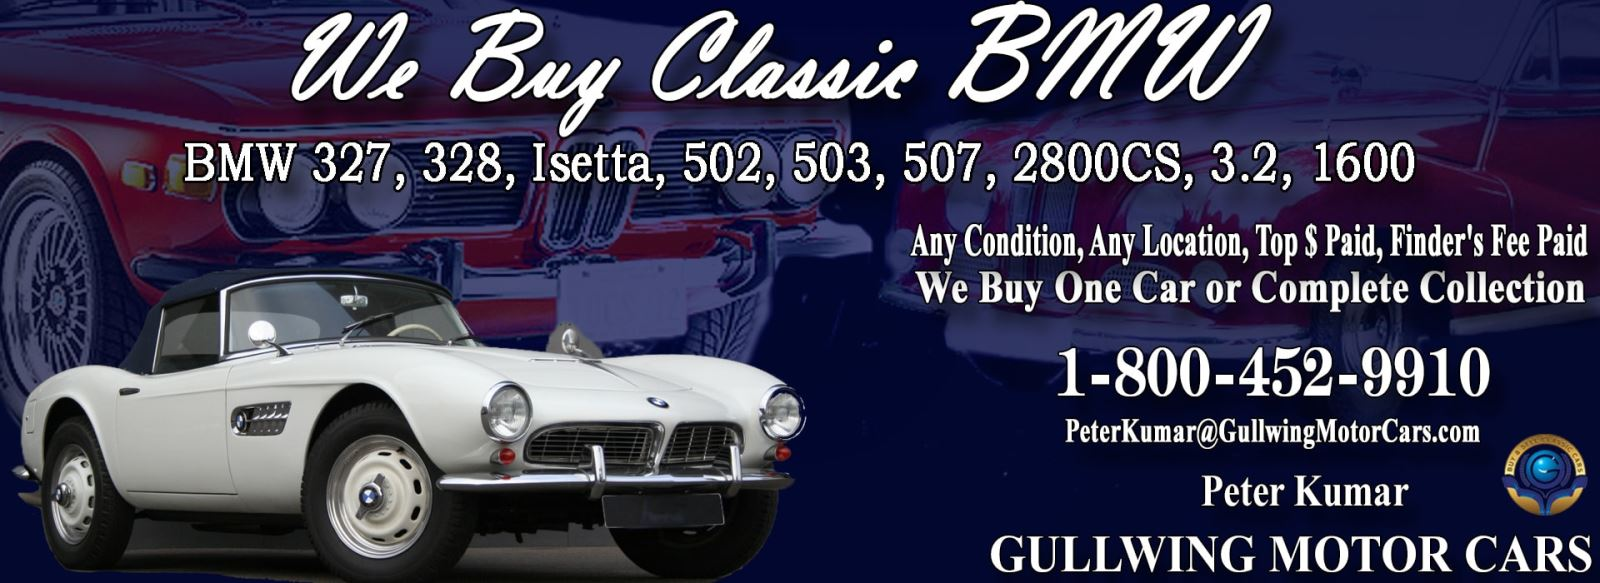 Classic BMW 503 for sale, we buy vintage BMW 503. Call Peter Kumar. Gullwing Motor